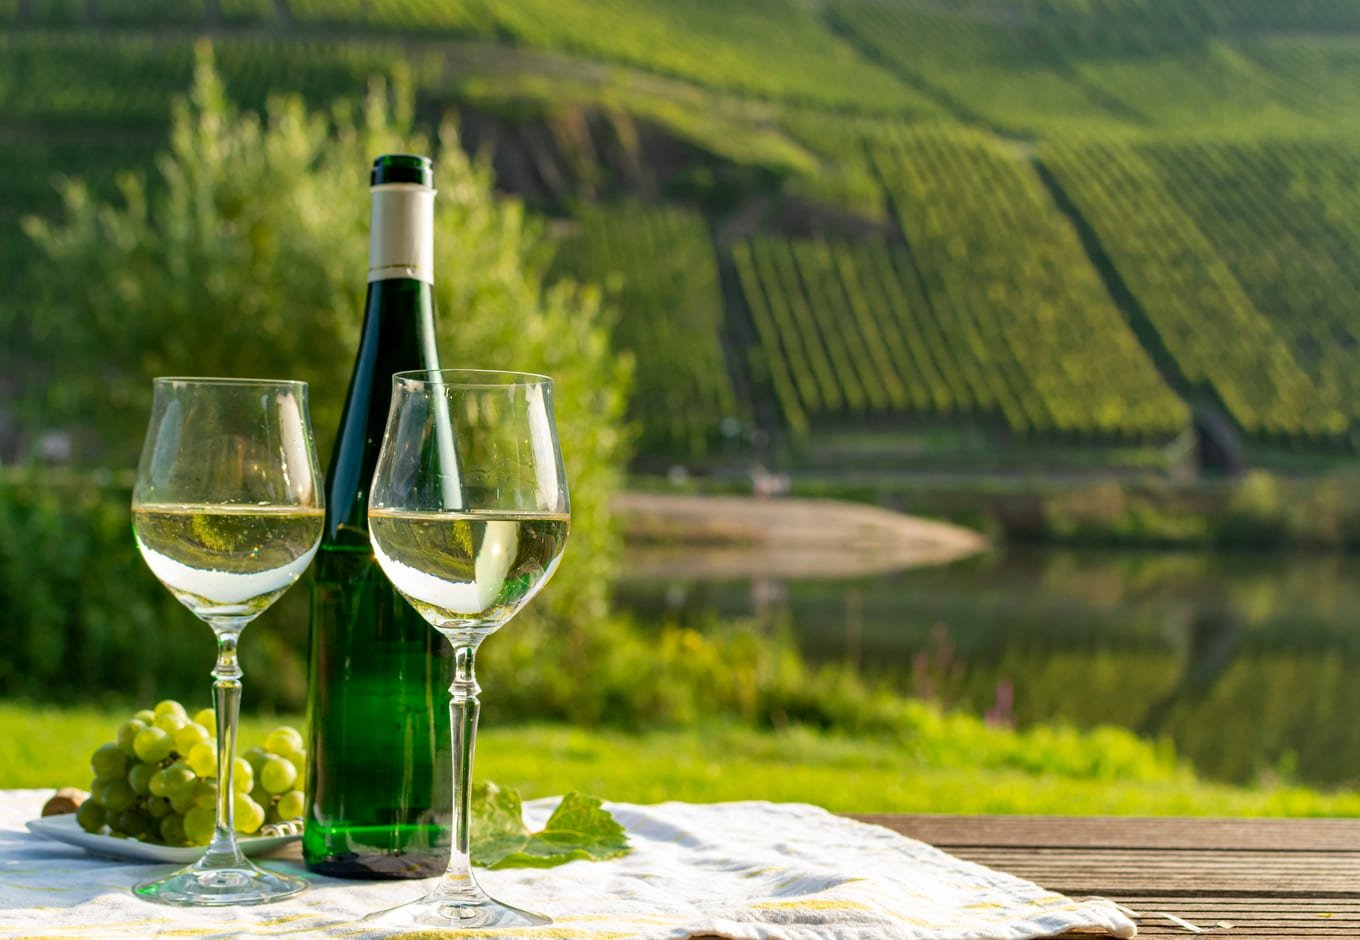 A bottle and two glasses of the German wine riesling.